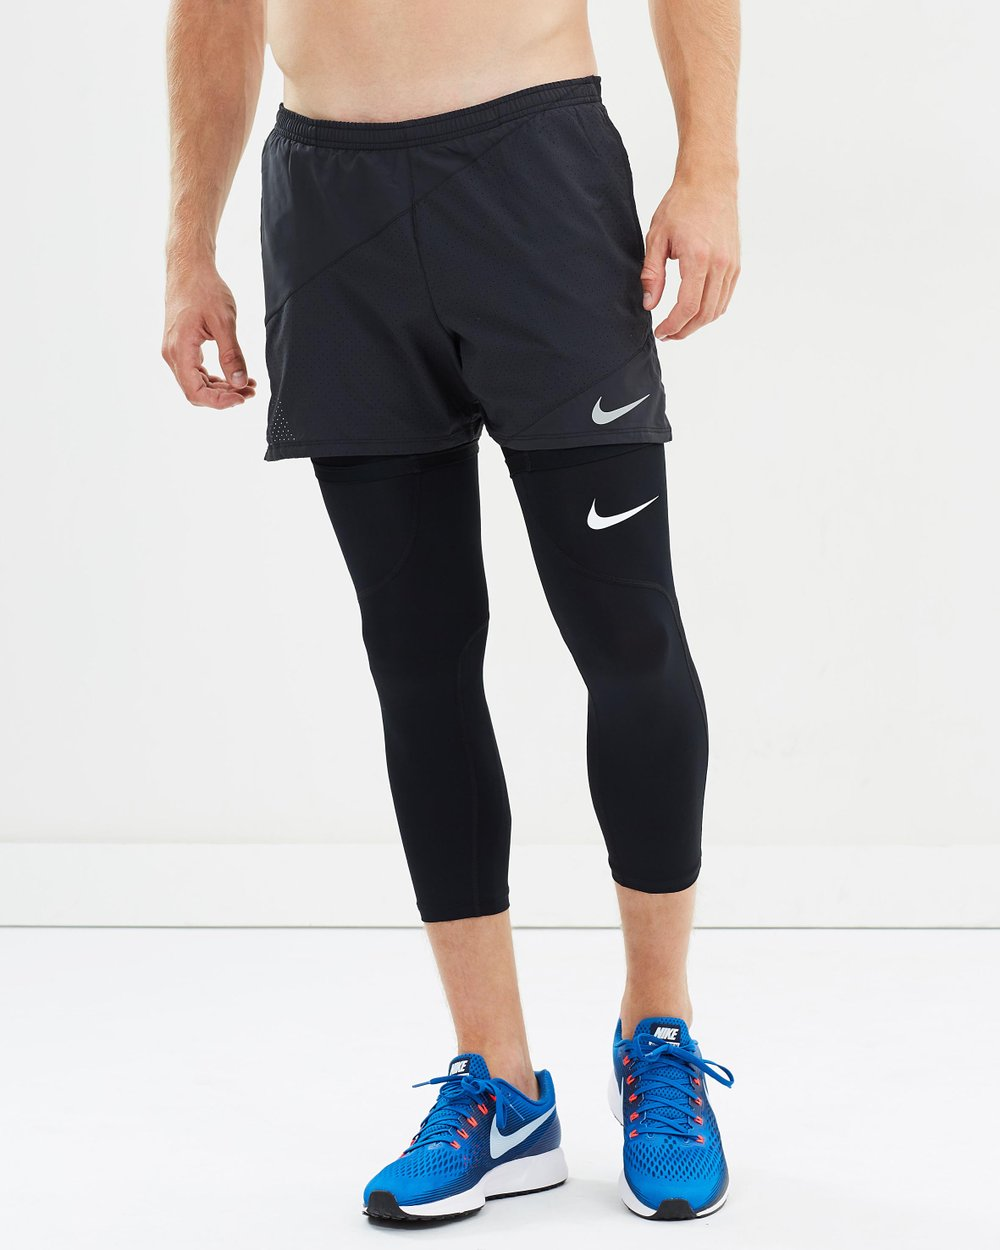 d10eff7e22f6e Men's Nike Pro 3/4 Tights by Nike Online | THE ICONIC | Australia